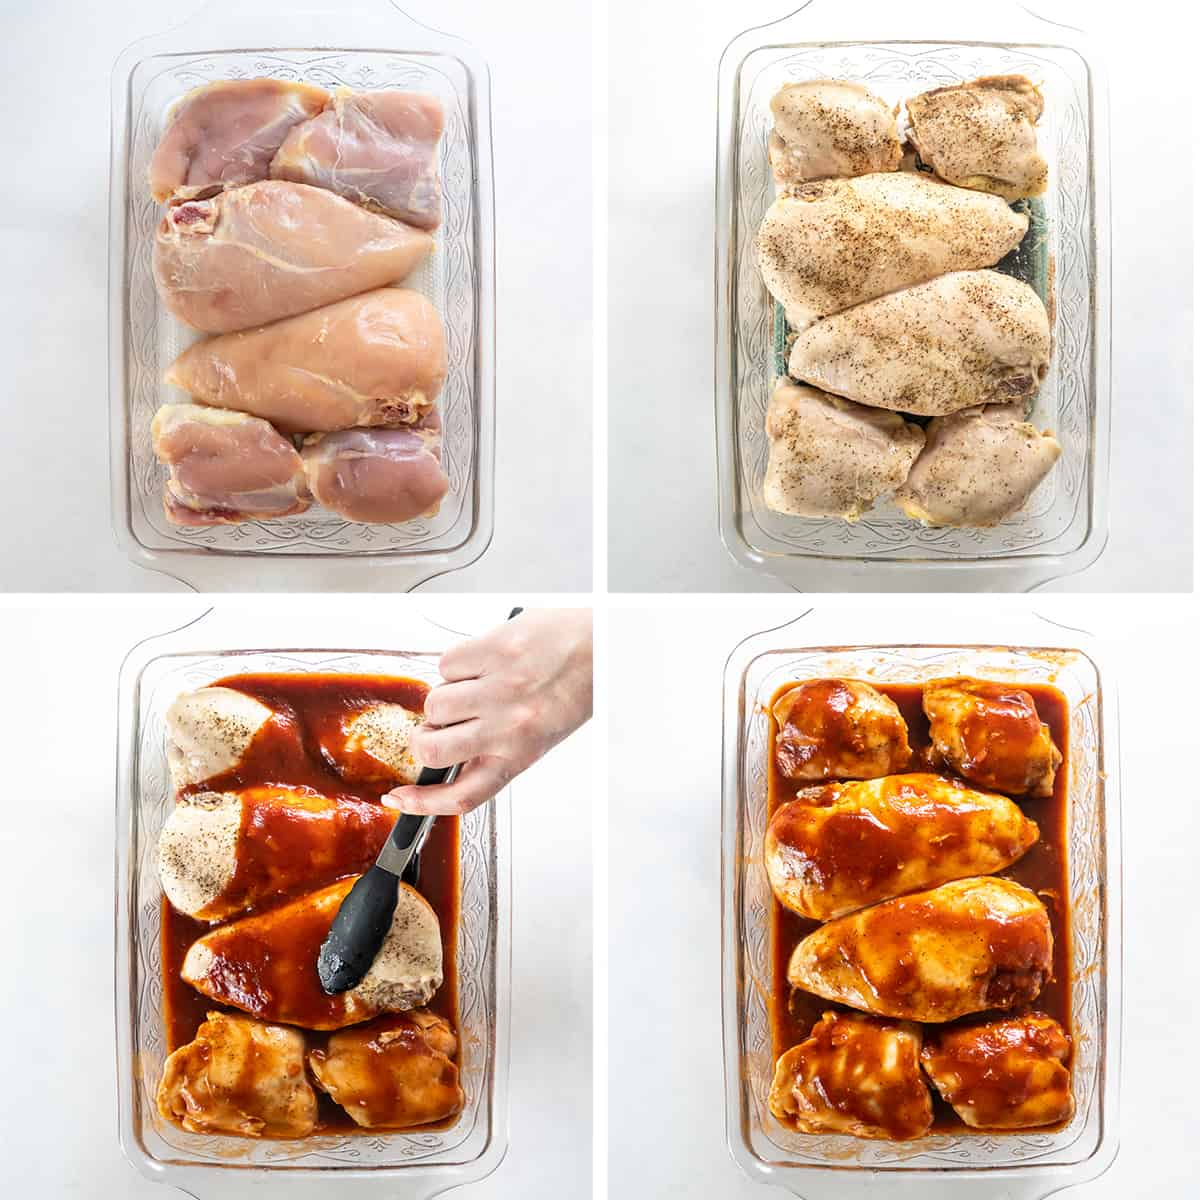 Four images showing BBQ chicken being made in a baking dish.